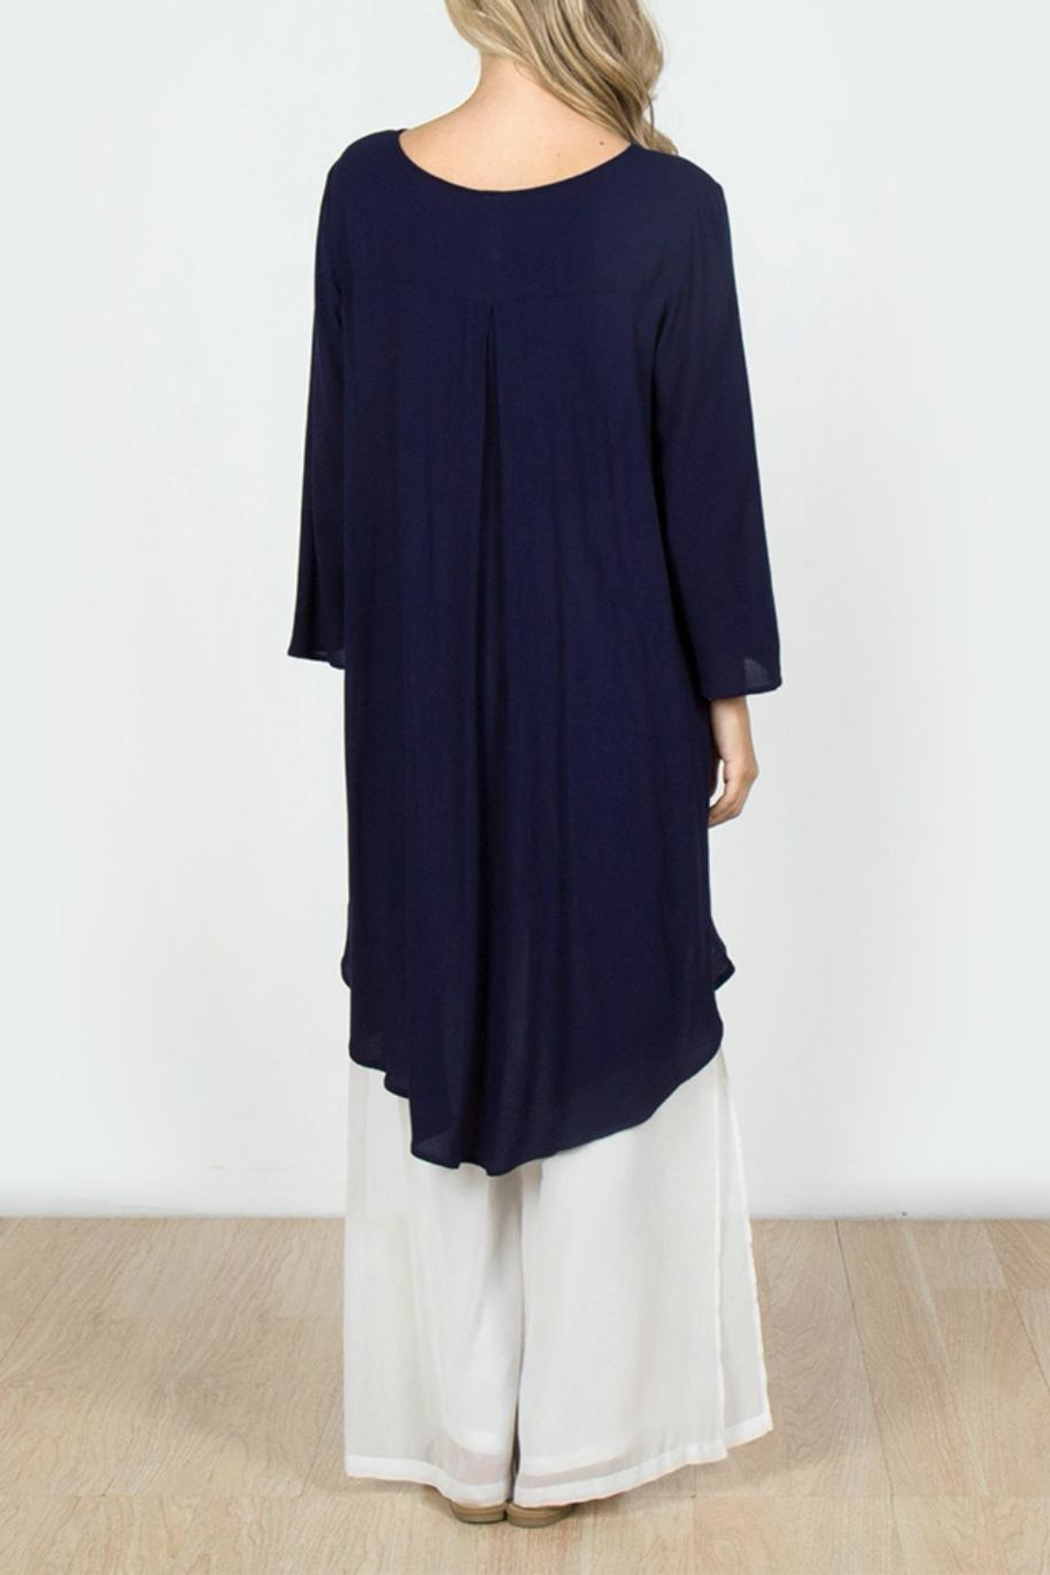 Monoreno Embroidered High-Low Tunic - Front Full Image